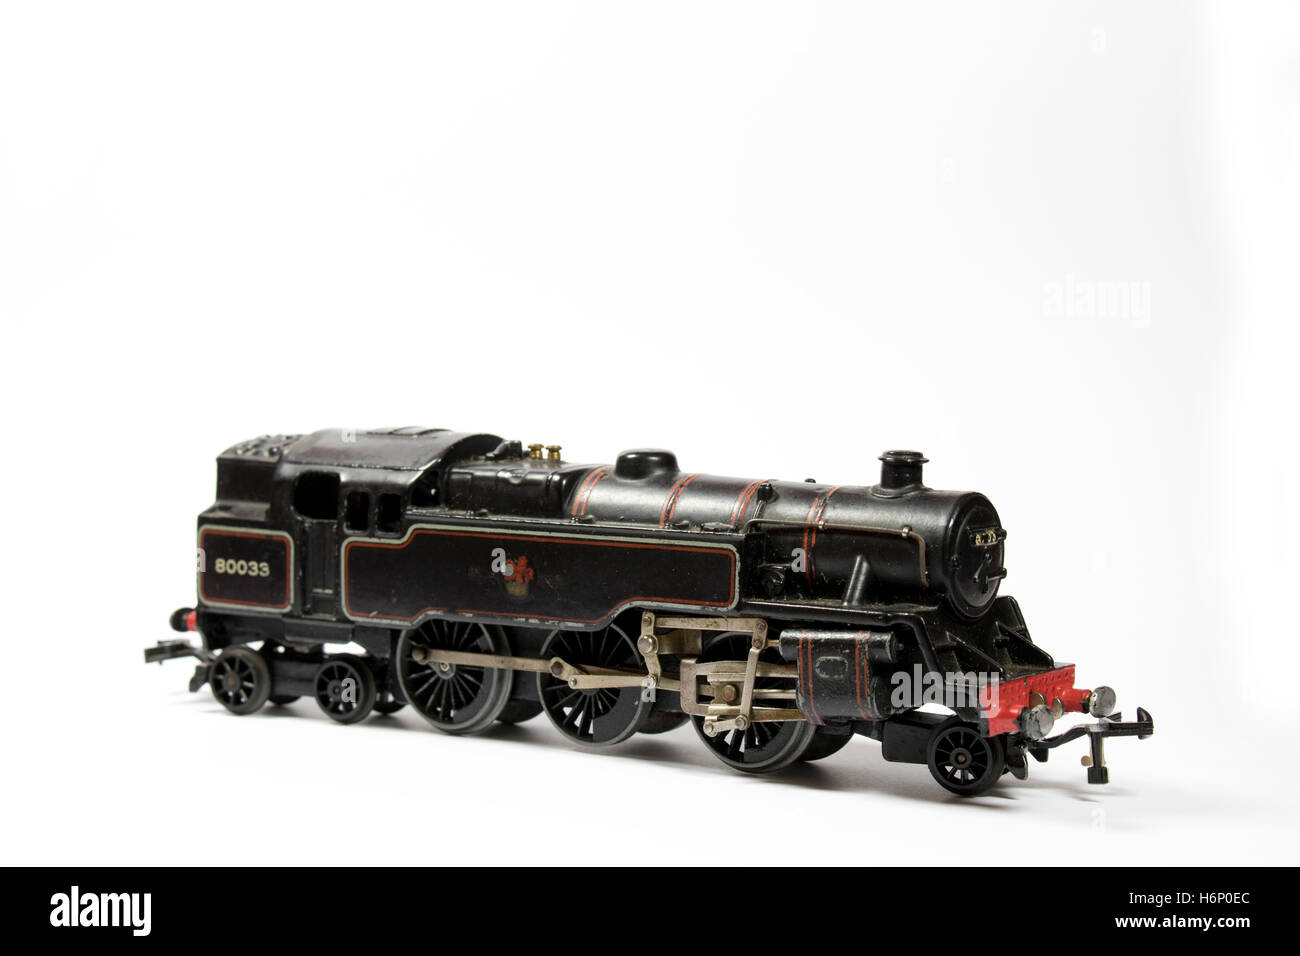 Toy Electric Model Train on White Background - Stock Image